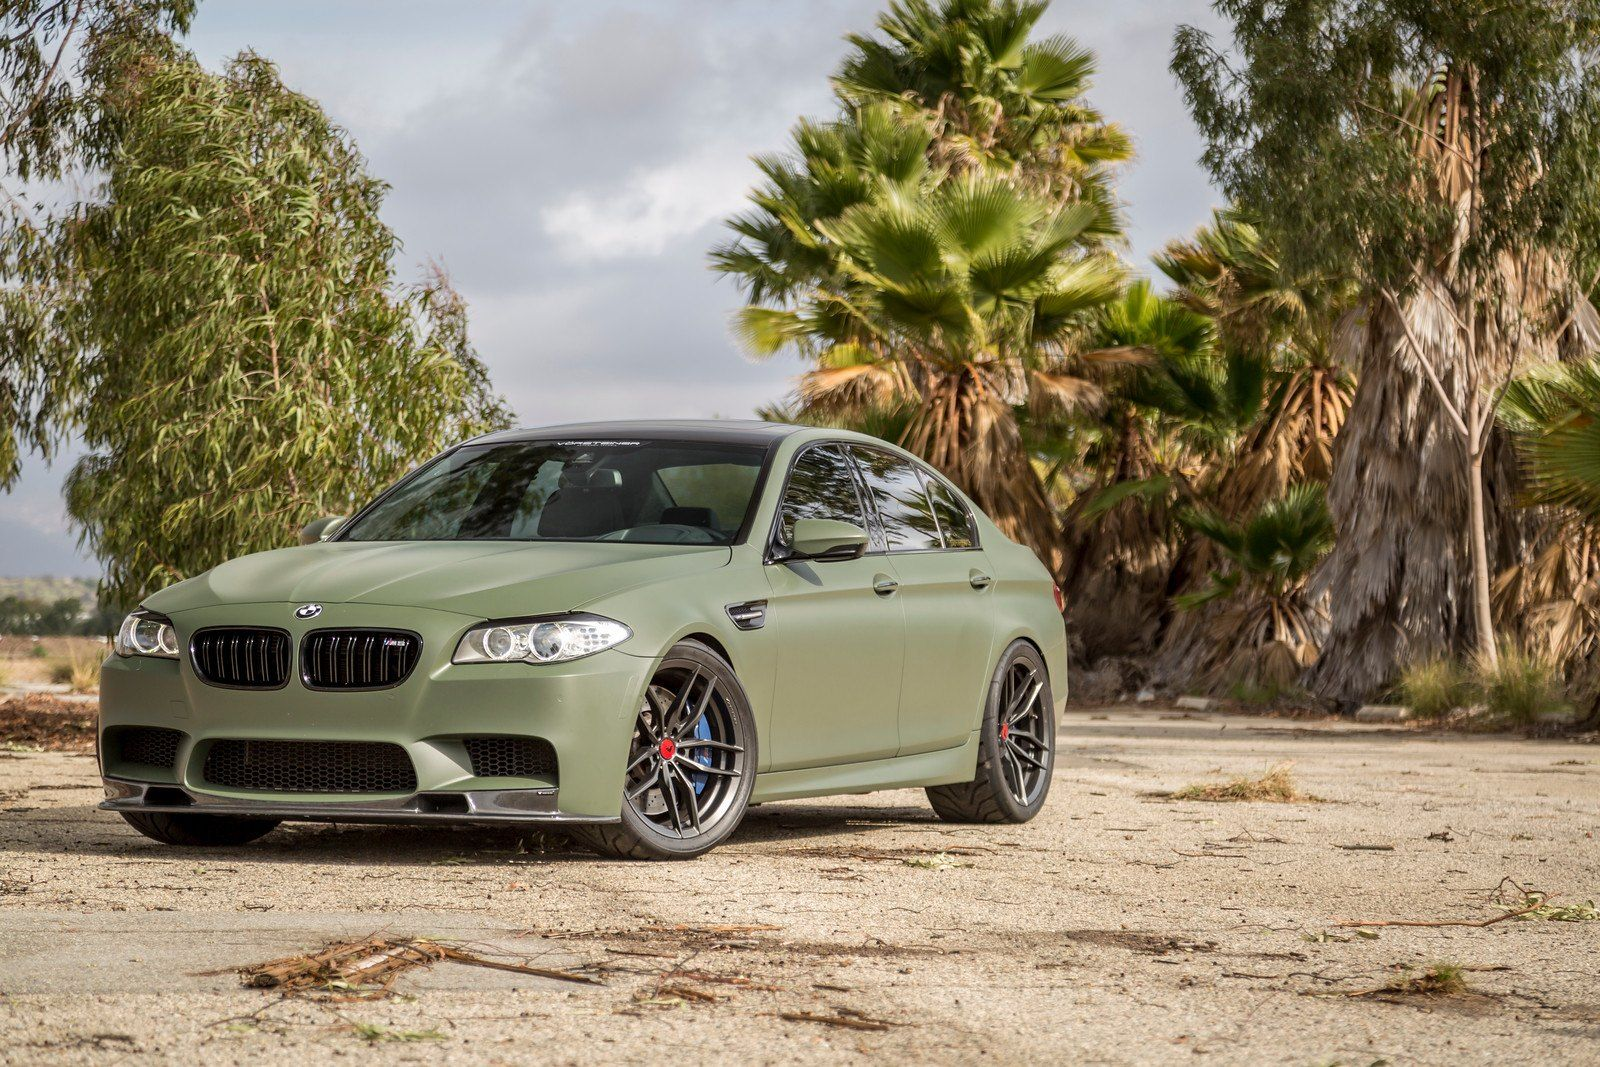 Interesting Matte Green Exterior Color Of Customized Bmw 5 Series